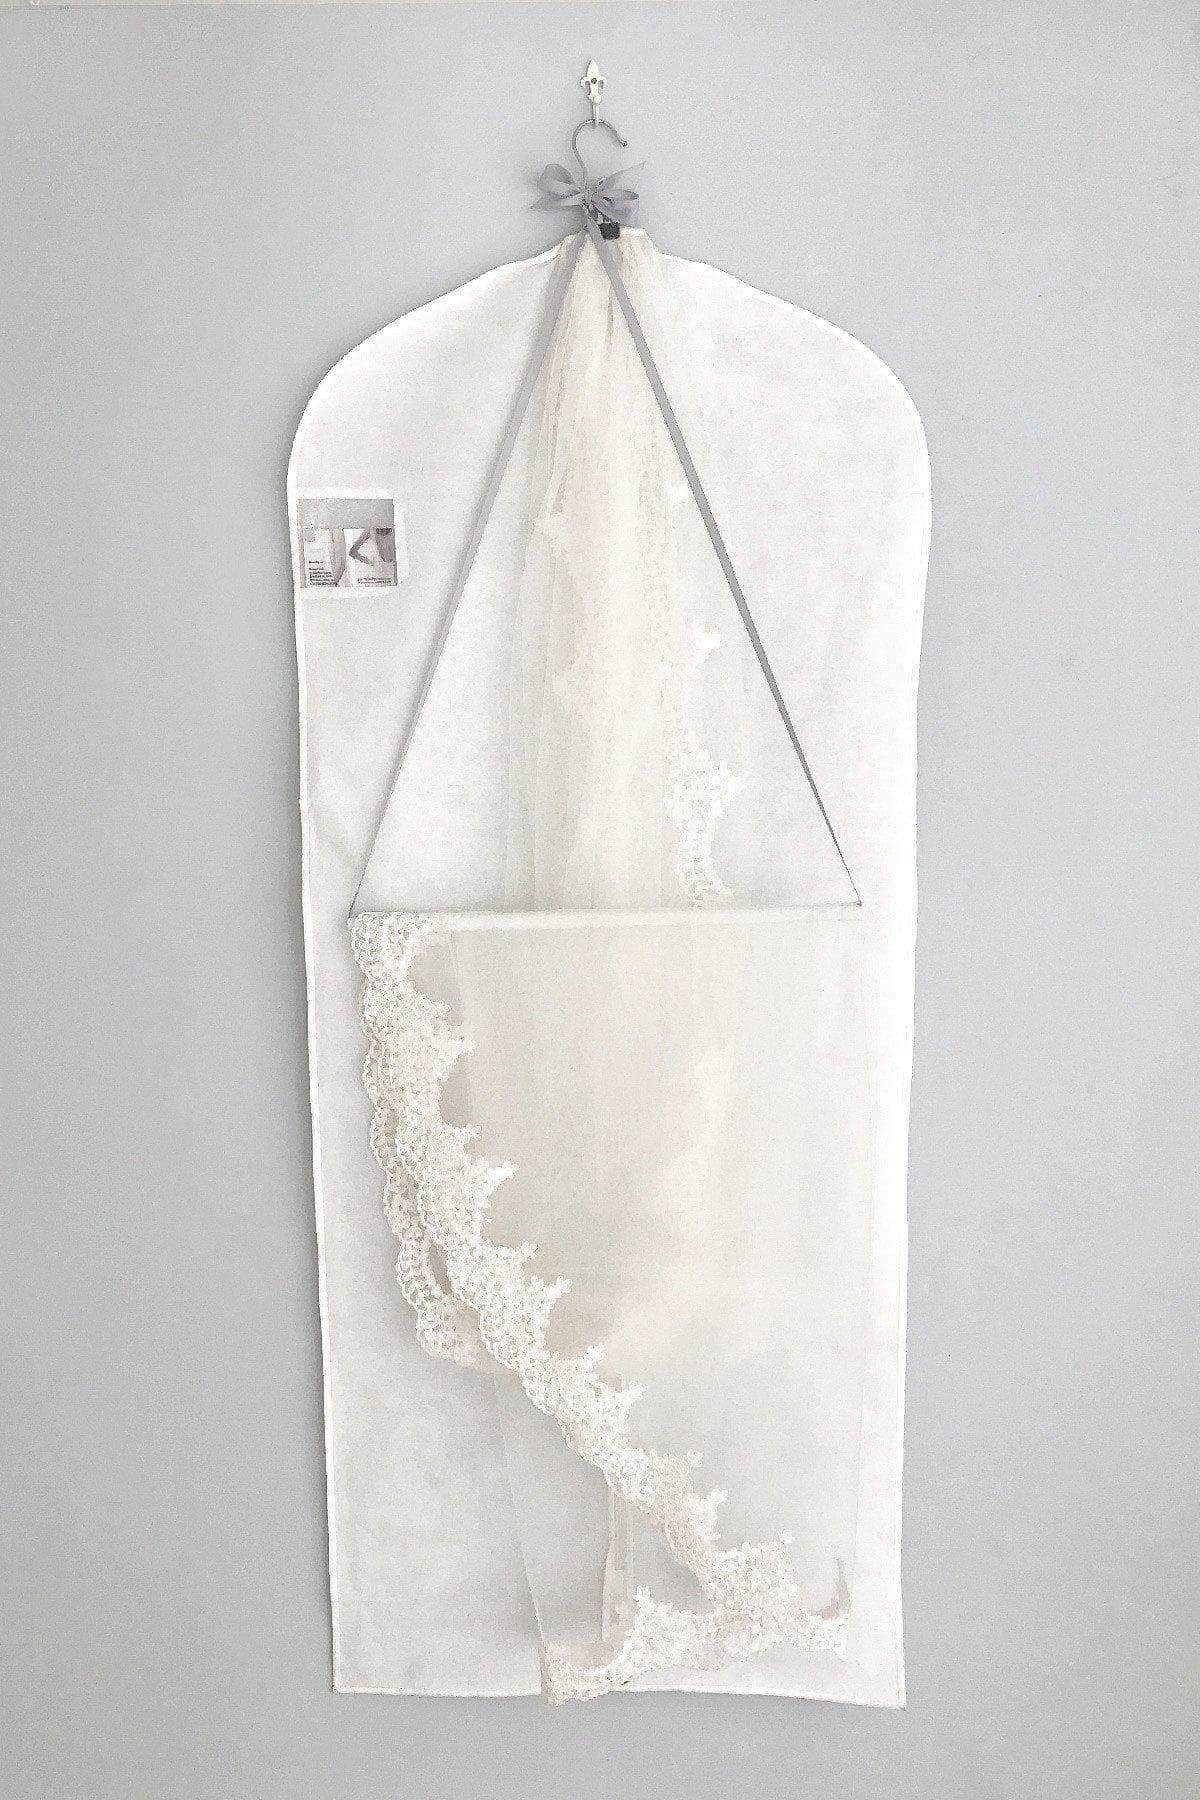 Veil protection Veil hanging hook and storage bag set